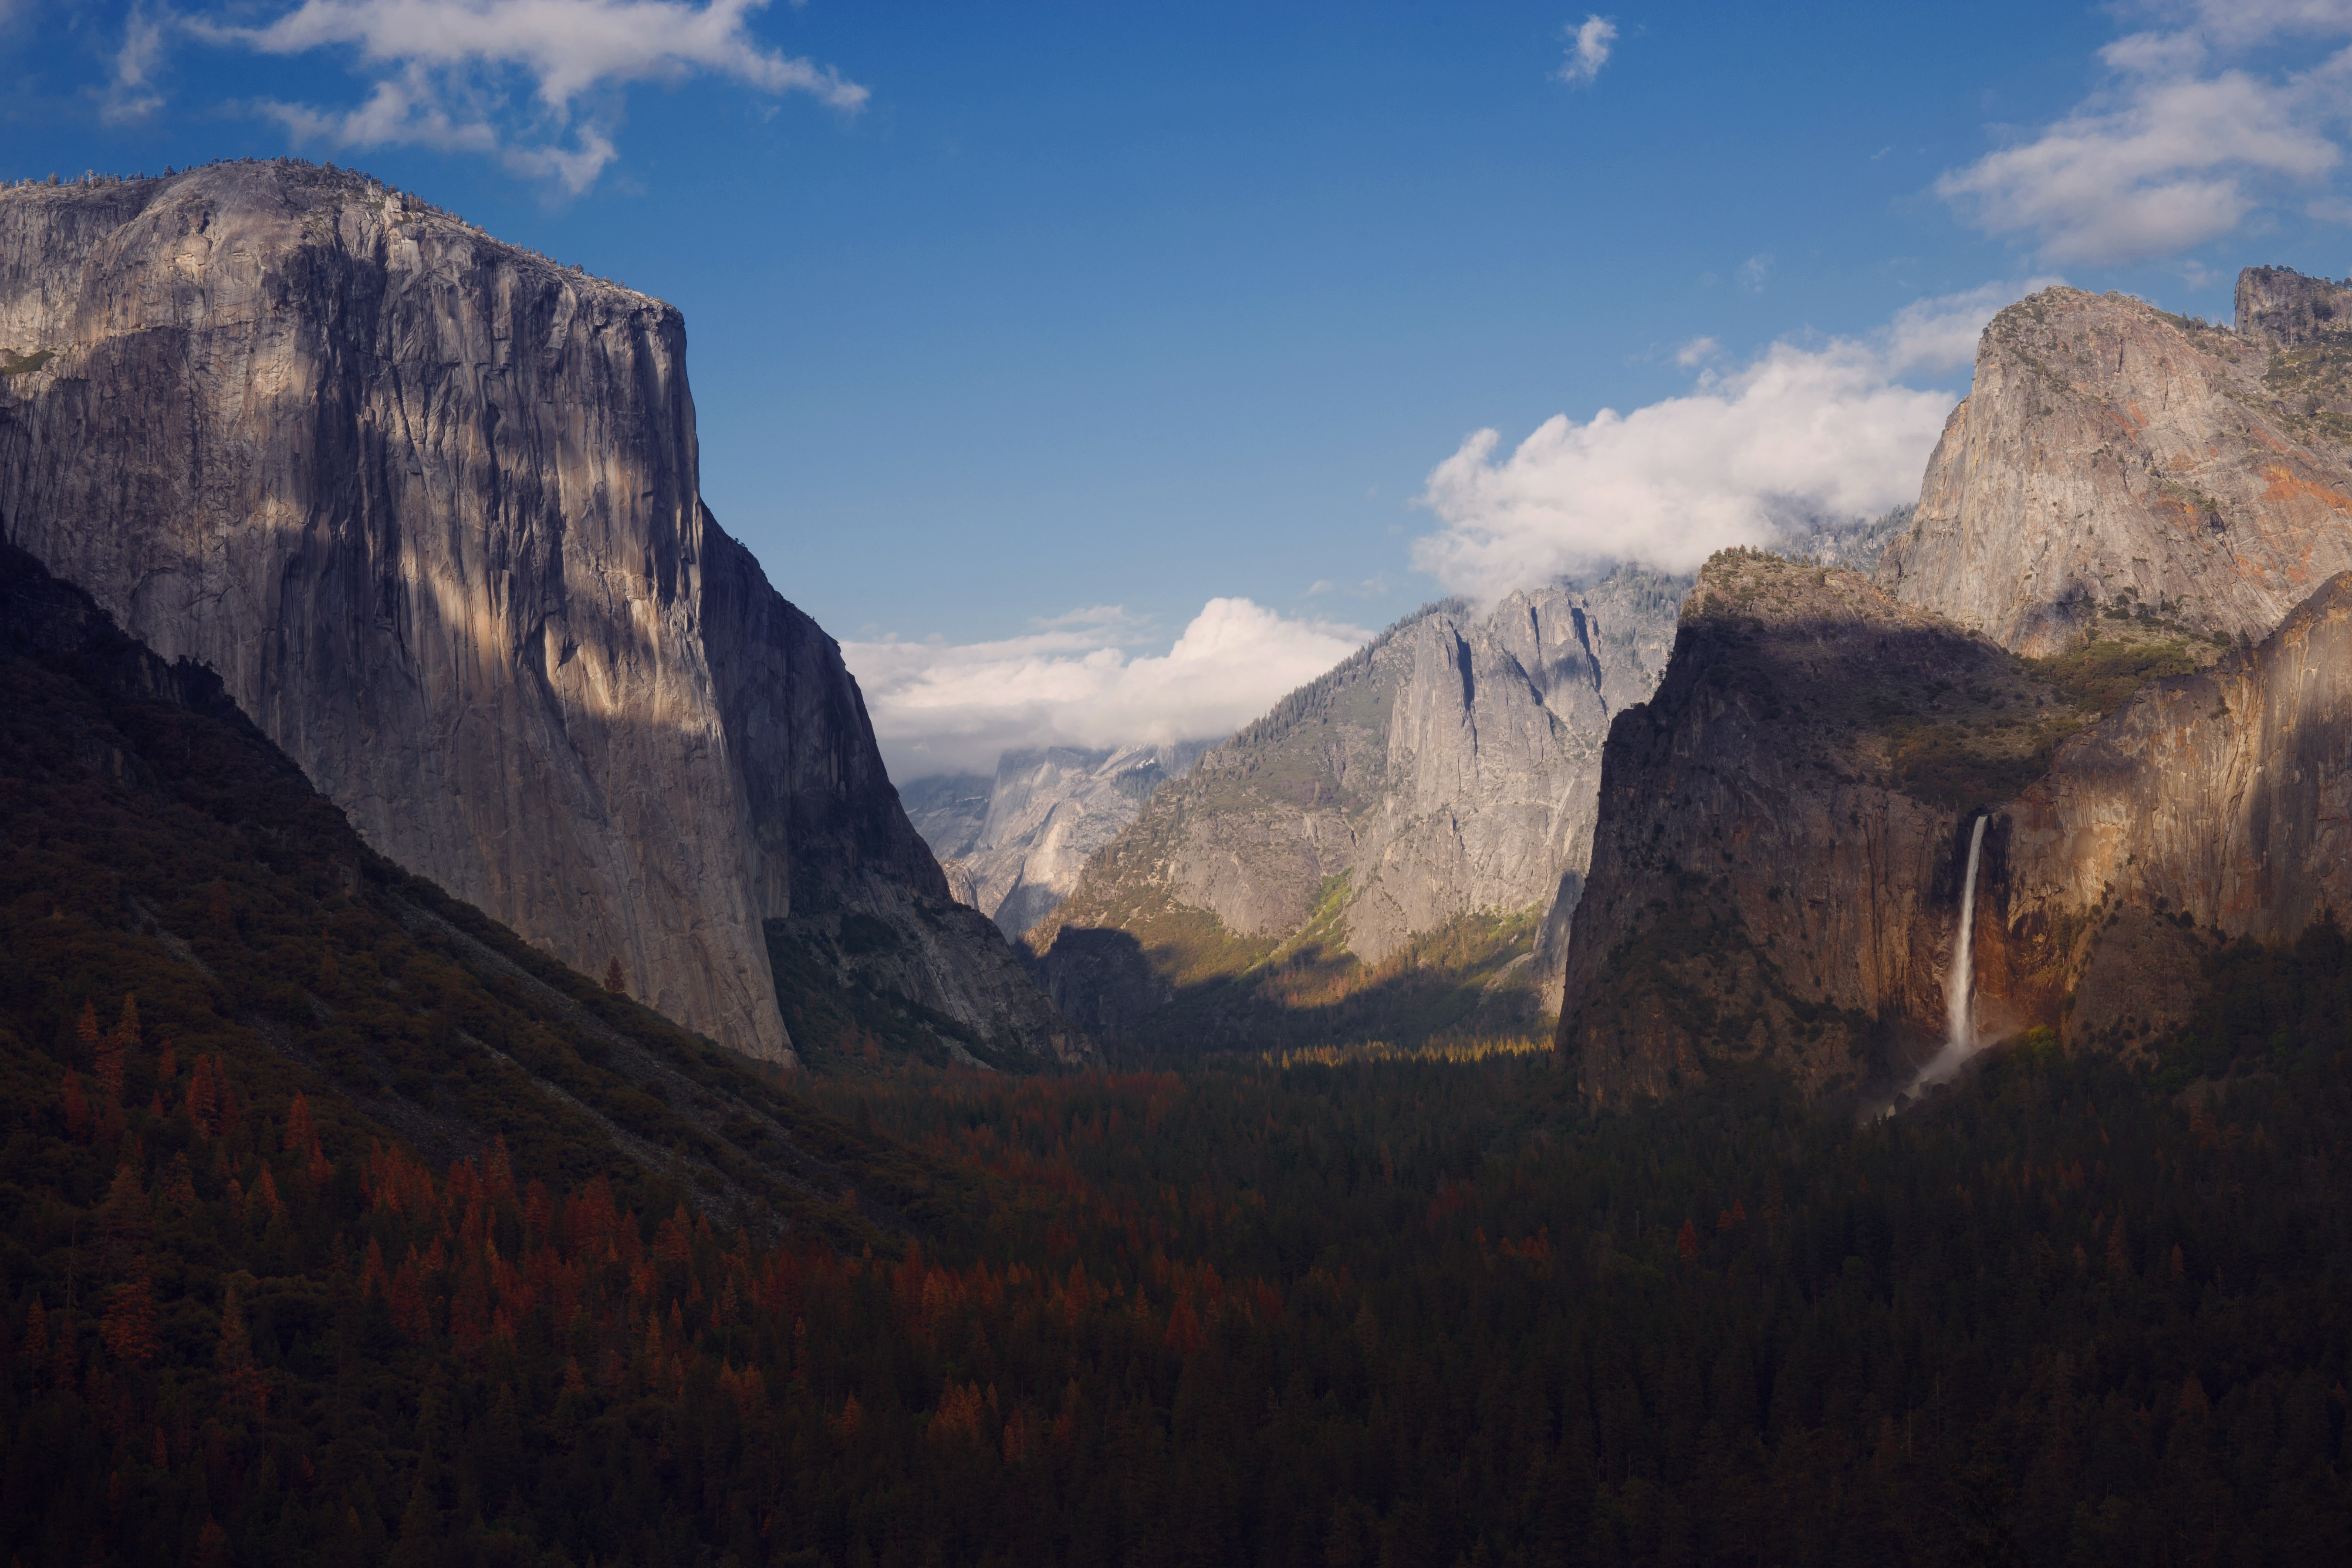 Long shadows on the wooded floor of Yosemite Valley